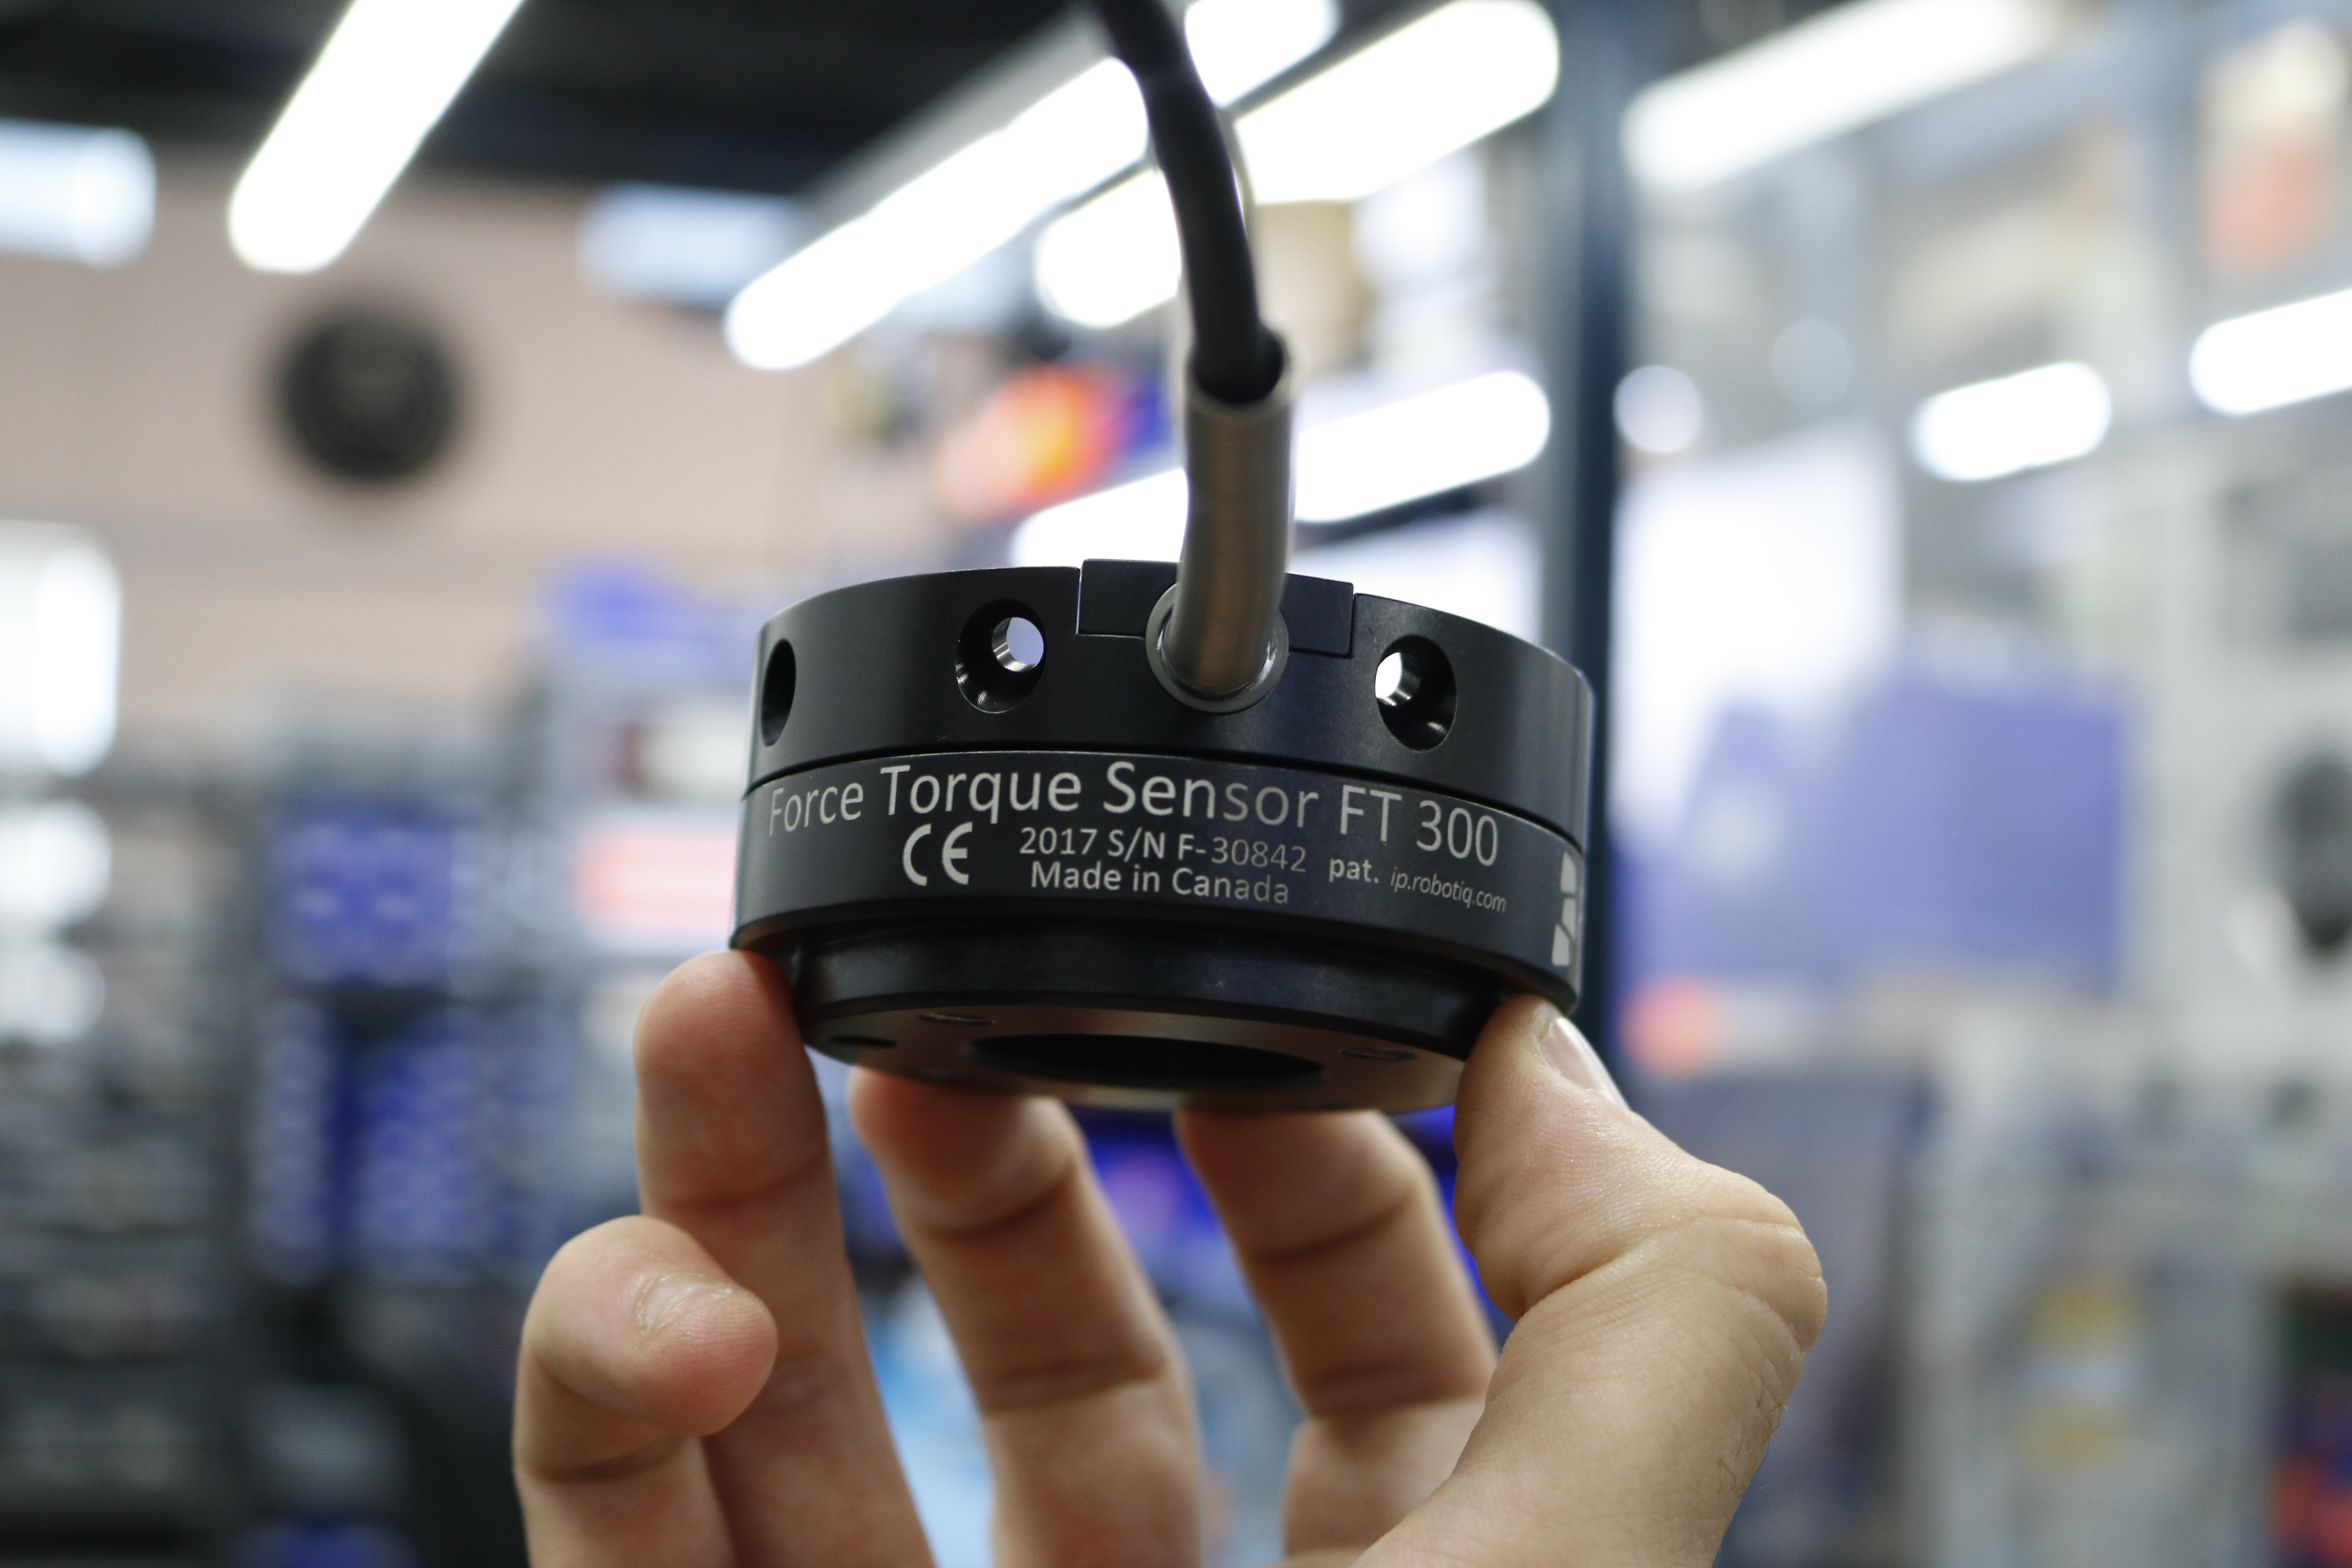 What's the Potential of Force Torque Sensors in Collaborative Robotics?